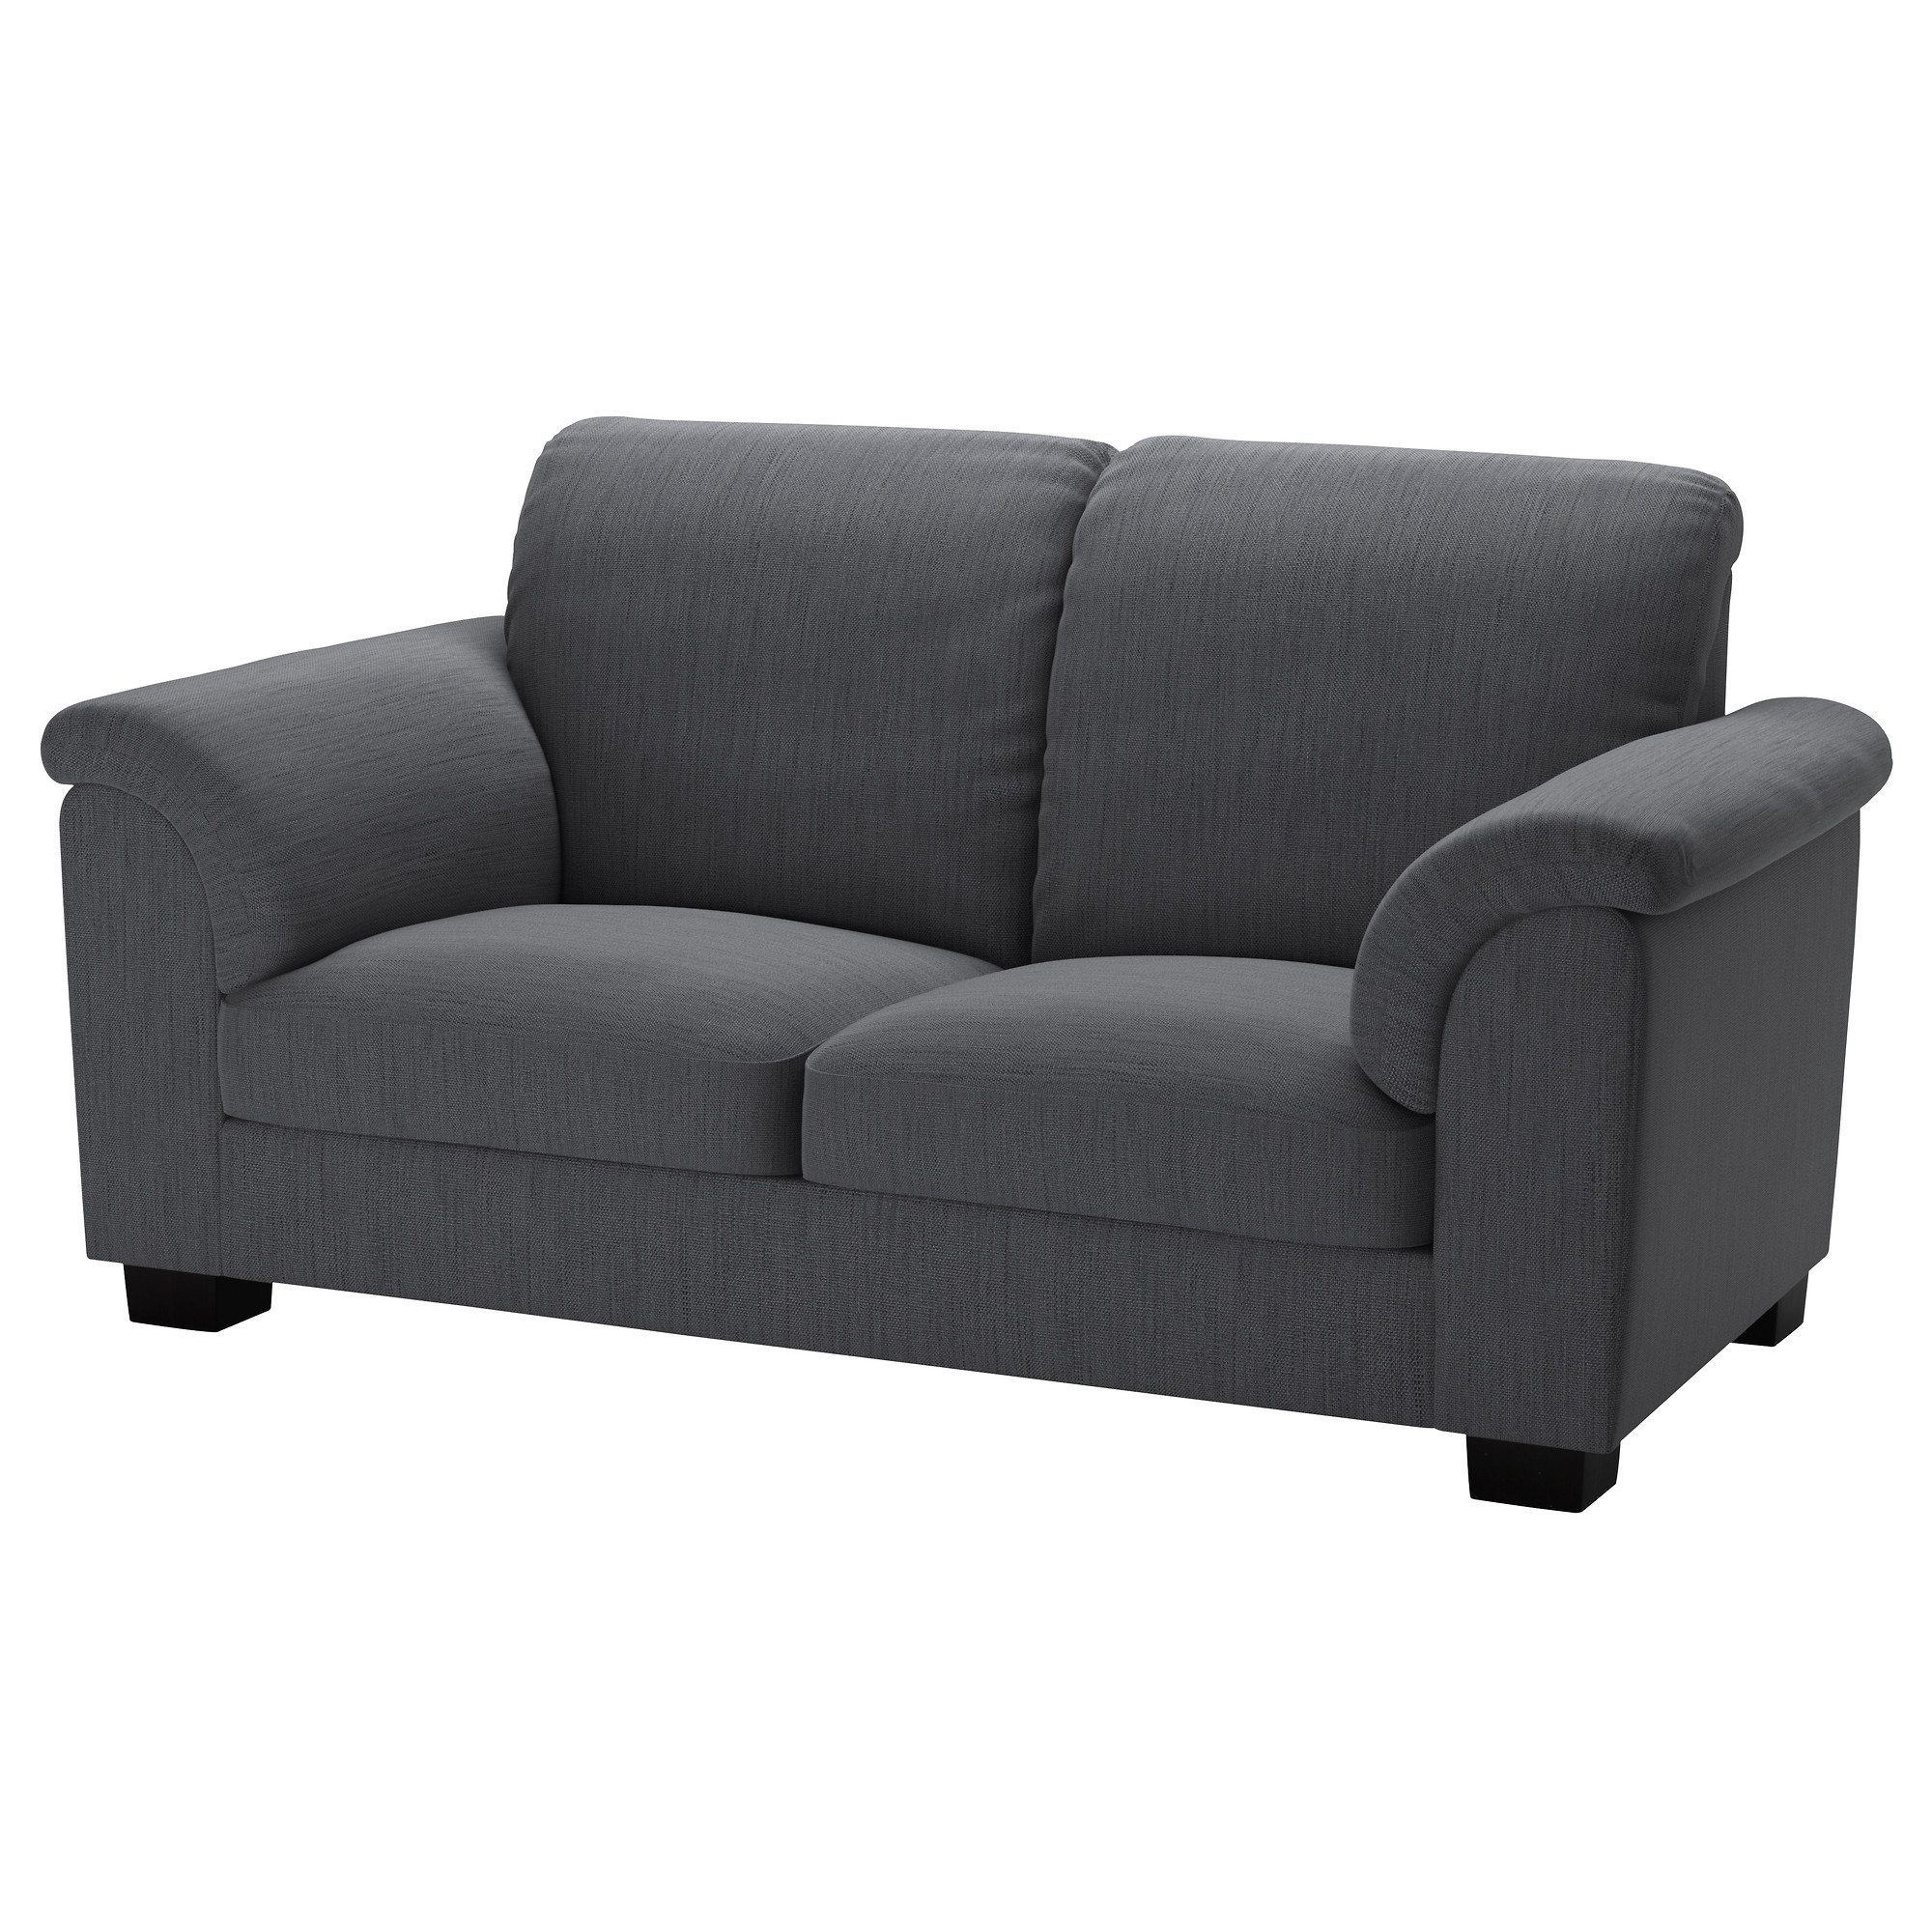 2 person sofa 2 seater sofa epic as chaise for small Sofa depth